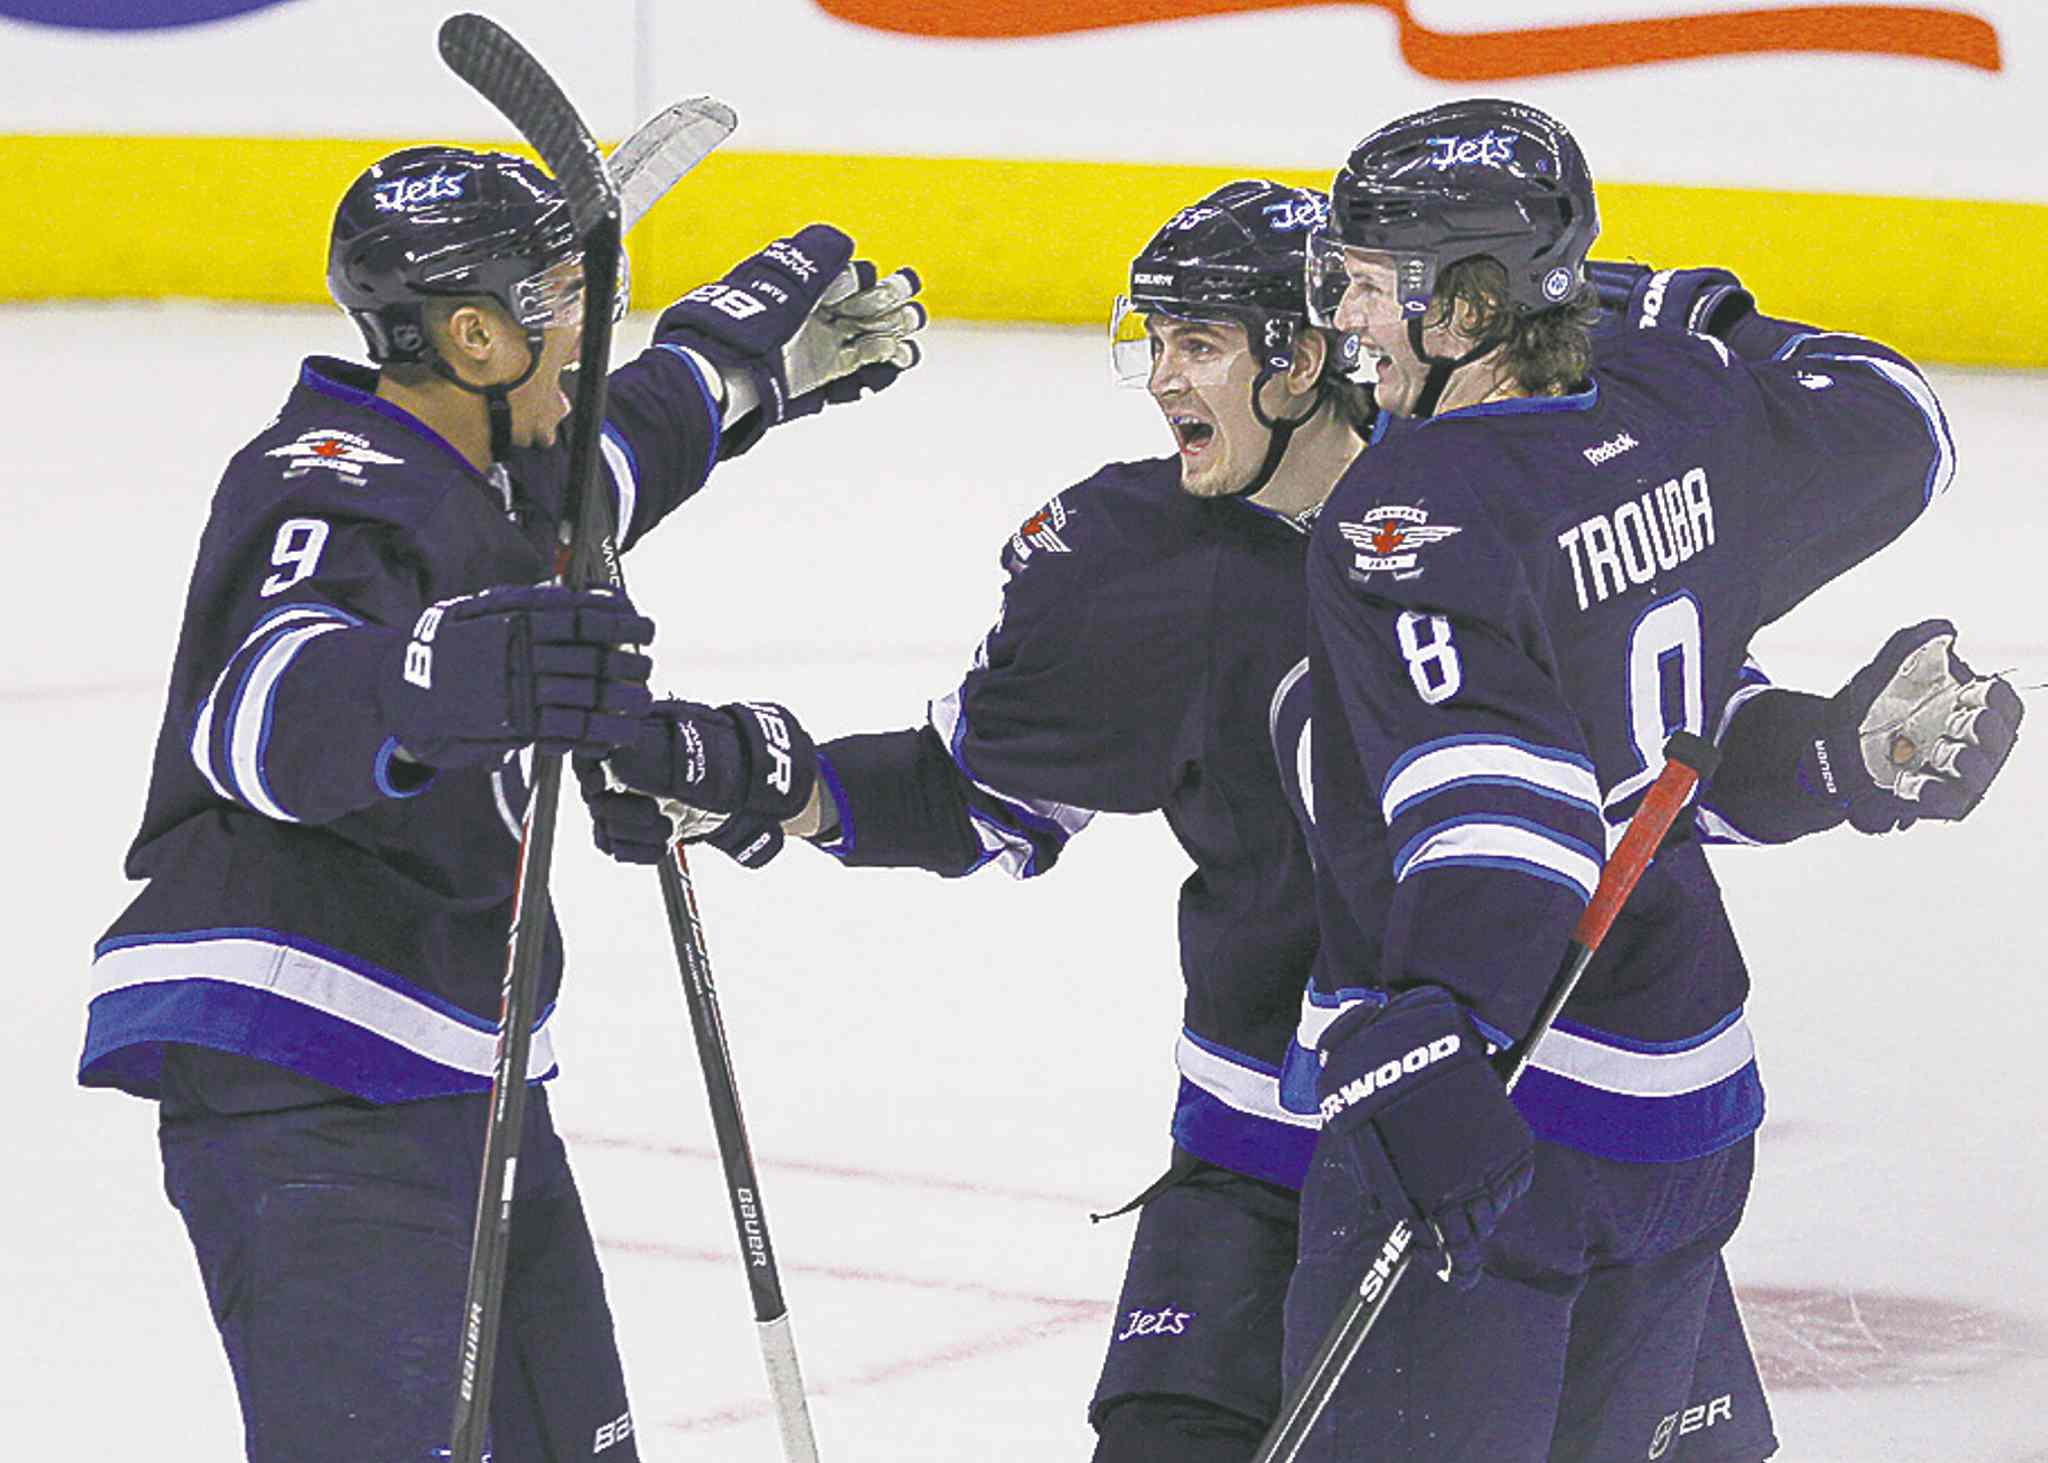 In Jacob Trouba (right) and Mark Scheifele (centre), Jets GM Kevin Cheveldayoff has the best pair of rookies in the league, Lawless argues. The future may be distant, but it is bright.